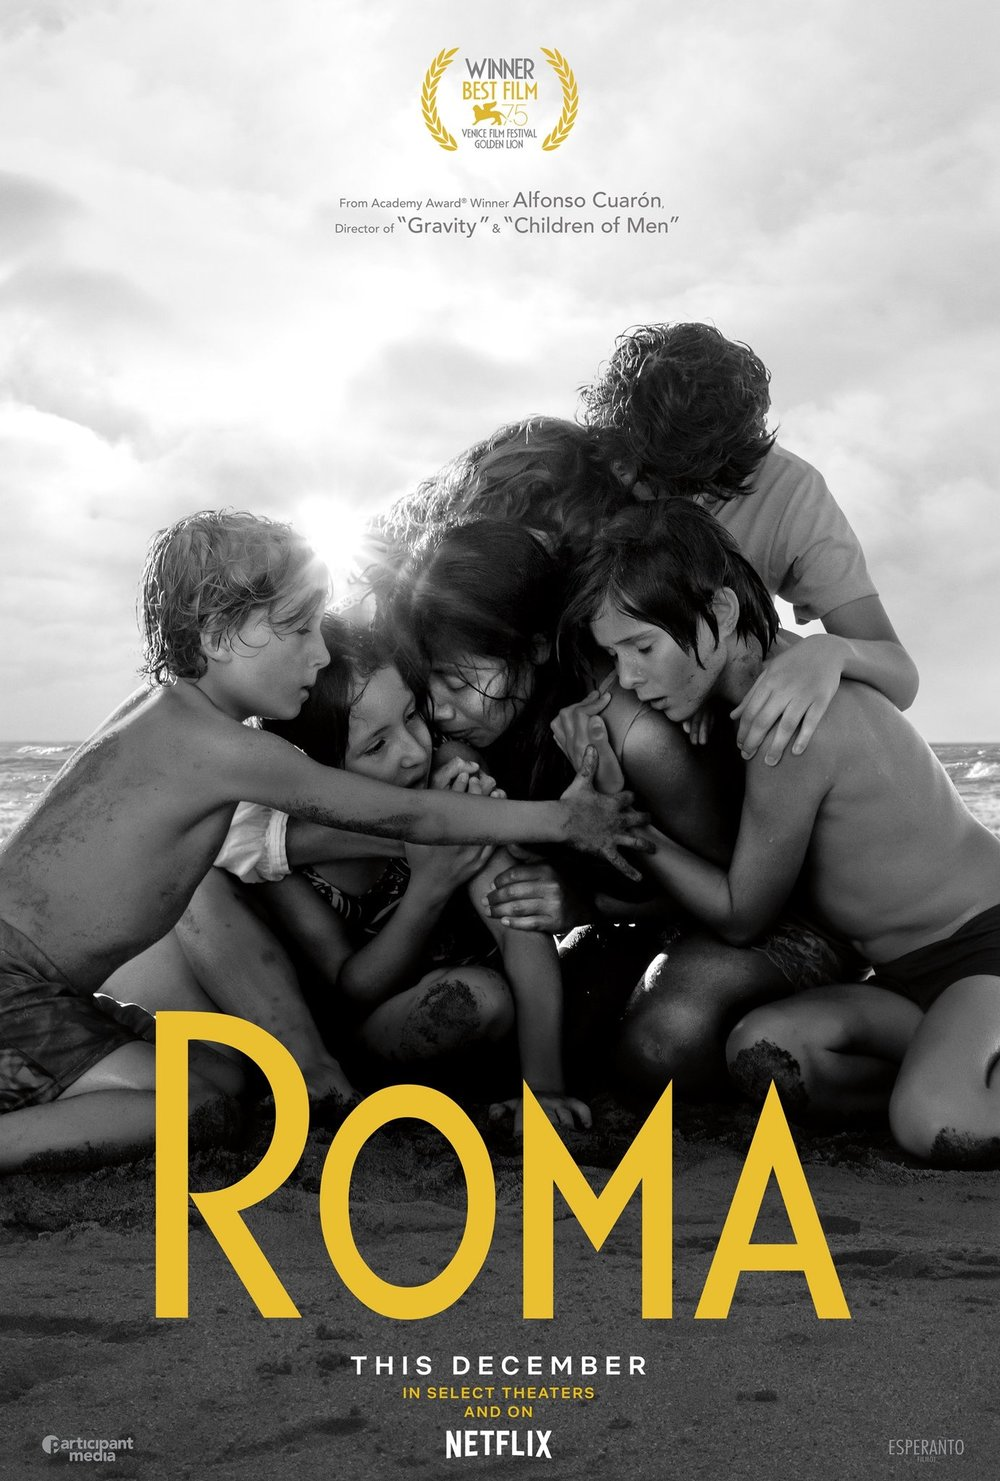 Review of Roma - by Kathia WoodsRoma is the latest offering from academy award winning director Alfonso Cuaron. It's a retrospective on his childhood in Mexico.At the heart of the story are two women Cleo and Sofia. Cleo is a quiet but dedicated housekeeper while Sofia is the lady of the house married to a successful doctor and mother of four.On paper, these two women don't have anything in common. We soon discover this to be untrue.Roman is shot beautifully in black and white setting a warm tone from the first frame to the last.Many of us of Latin American decent know these women; these women are our grandmothers, mothers, aunts, and sisters. We understand the patriarchy that raised them.As Latin women, we are raised to put others first, family over everything.You can see it in Cleo who left her home to be in service to someone else. Sofia's children are rendered with affection as if they were her own. She knows their likes and dislikes, she taught them how to pray and they, in turn, rely on her for everything.Sofia is a woman who gave up her career to become a wife. She dedicated her life to uplift and supports her husband.What I love about Roma is how Cuaron chose to display how each woman handles heartbreak.Cleo who is beautifully portrayed by first-time actress Yalitza Aparicio gives an unforgettable performance. You are rooting for her at every turn. You want her to win because she's a decent person. Herr performance is so great because of the subtleties.Her strength permeates in the quiet moments for example when she is standing in front of the movie theater waiting for Fermin to return.Veteran actress Marina de Tavira is equally strong as Sofia.Here you have a highly successful professional woman begging for her husband's affection. She knows that their marriage is over but refuses to give up.Unlike Aparicio's character Cleo who's learned to internalized her, pain De Tavira gives raw emotion. From chasing after her husband to hysterically crying, Marina doesn't hold back.The contrast of these two women is what binds them. In the end, they both are learning that men don't define their value. Their strength comes from within.Alfonso dedication towards creating something so loving is shown not only in these two women's performance but displayed in the cinematography. He accurately captures the hustle and buzz of the big city alongside the political turmoil taking place in Mexico City during the seventies. It's in the description of local delicacy of a torta to the regional language of Mixtec spoken between Cleo and Adela. All the above add to the beauty of this cinematic masterpiece.There's been a lot of talk about Oscar nominations, and often those terms get tossed around as marketing tools. In Roma's case, it's accurate. How fitting that during this time as we are struggling with our neighbors to the south that they honor us with such a masterpiece.Diversity- 9 the fact that they spoke Mixtec and that he cast actors from that region show his dedication to authenticity.Scale- This movie is one of the best films of the year, and I give it a nine for acting and cinematography.